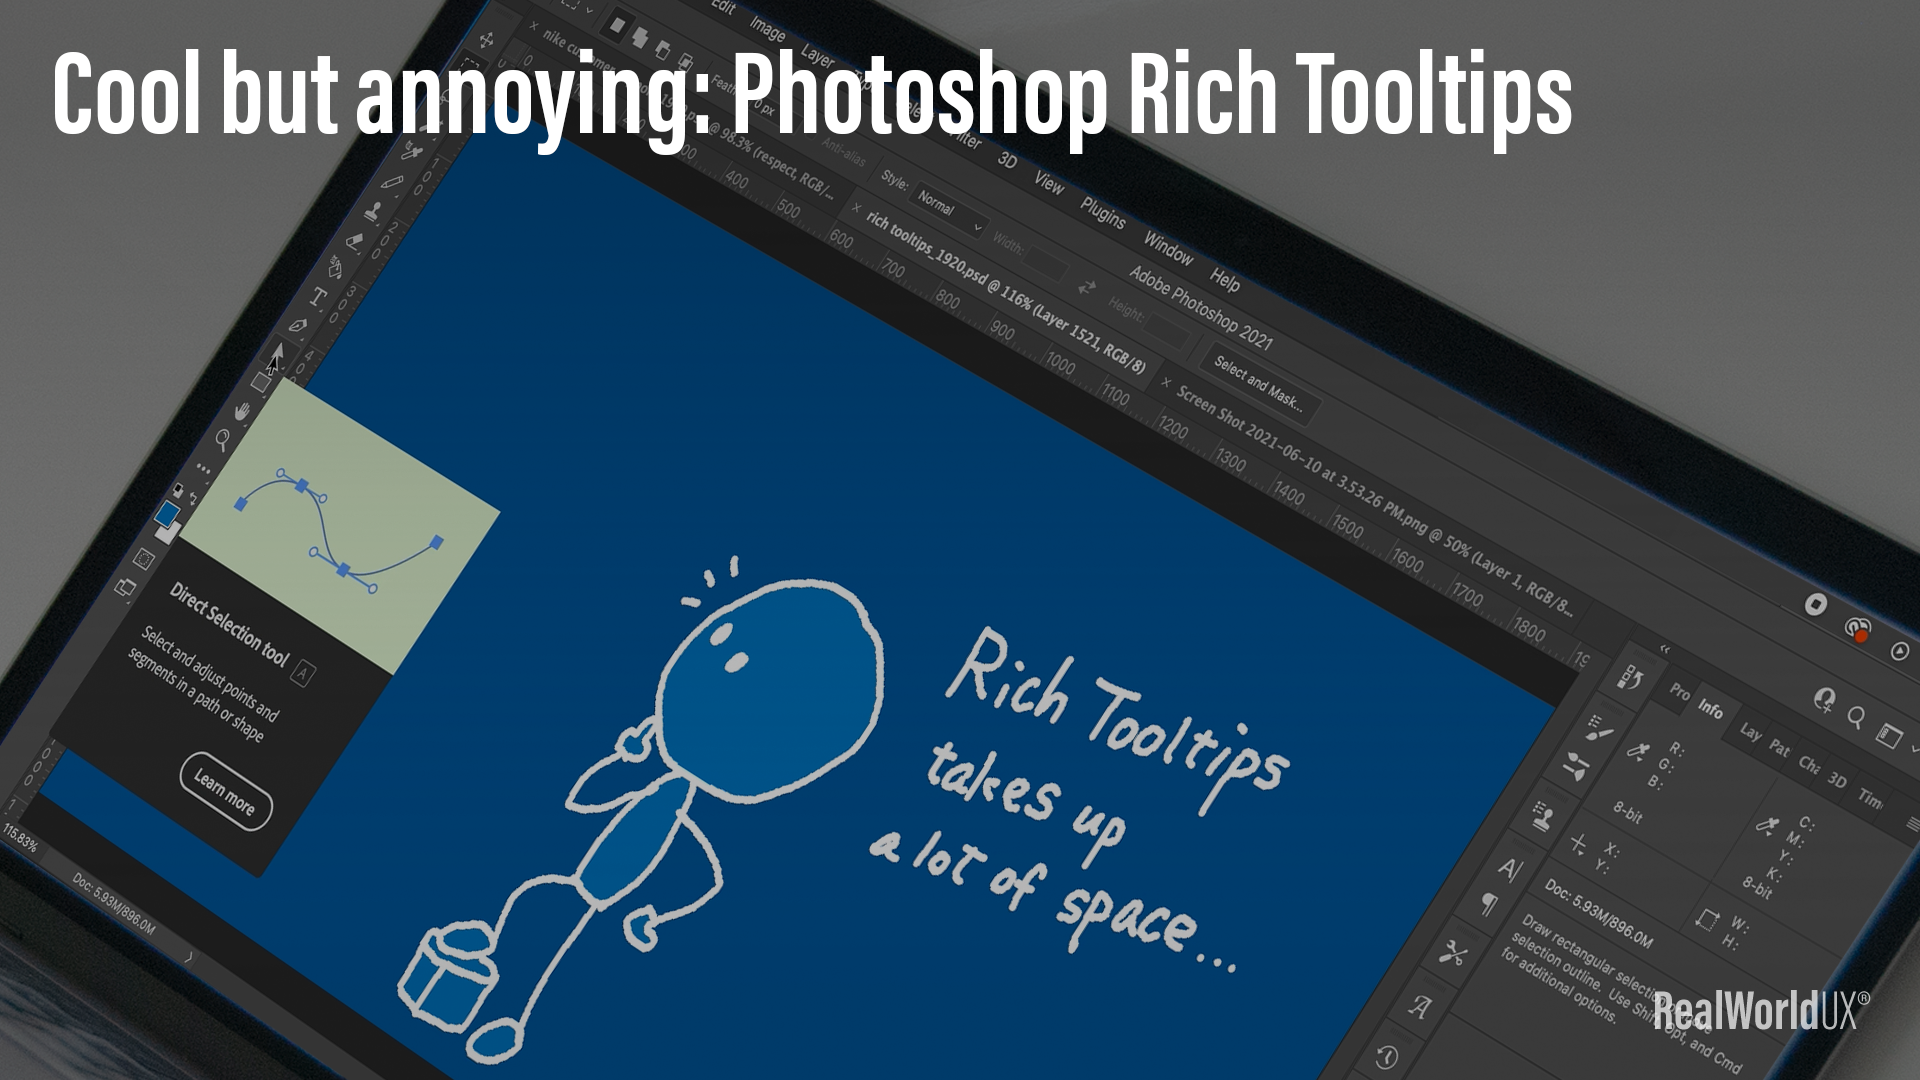 A screenshot of Photoshop Rich Tooltips appearing in Photoshop on top of the author's artwork.